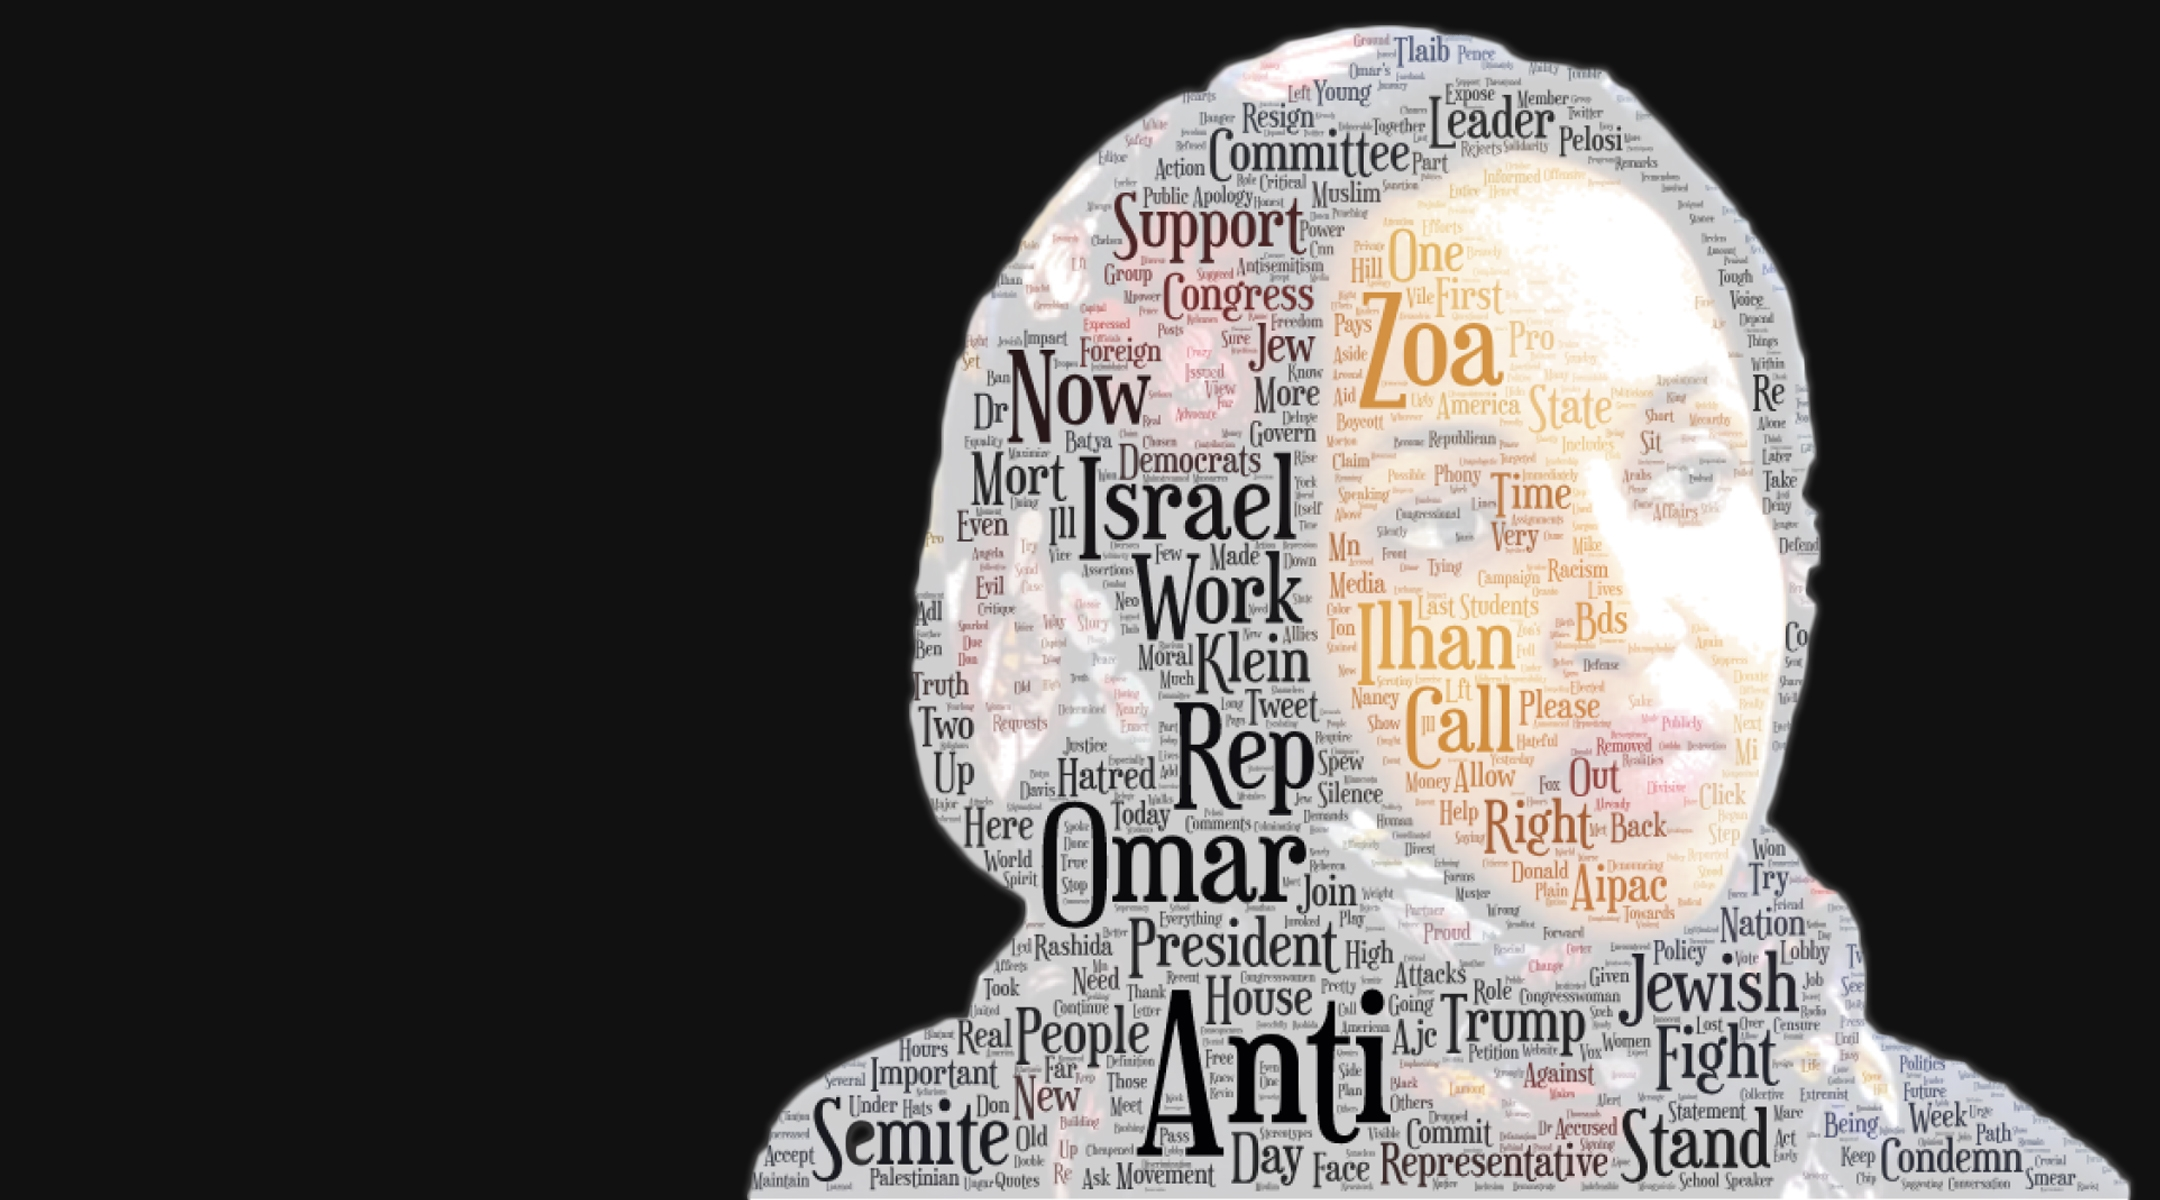 ilhan omar - and her opponents